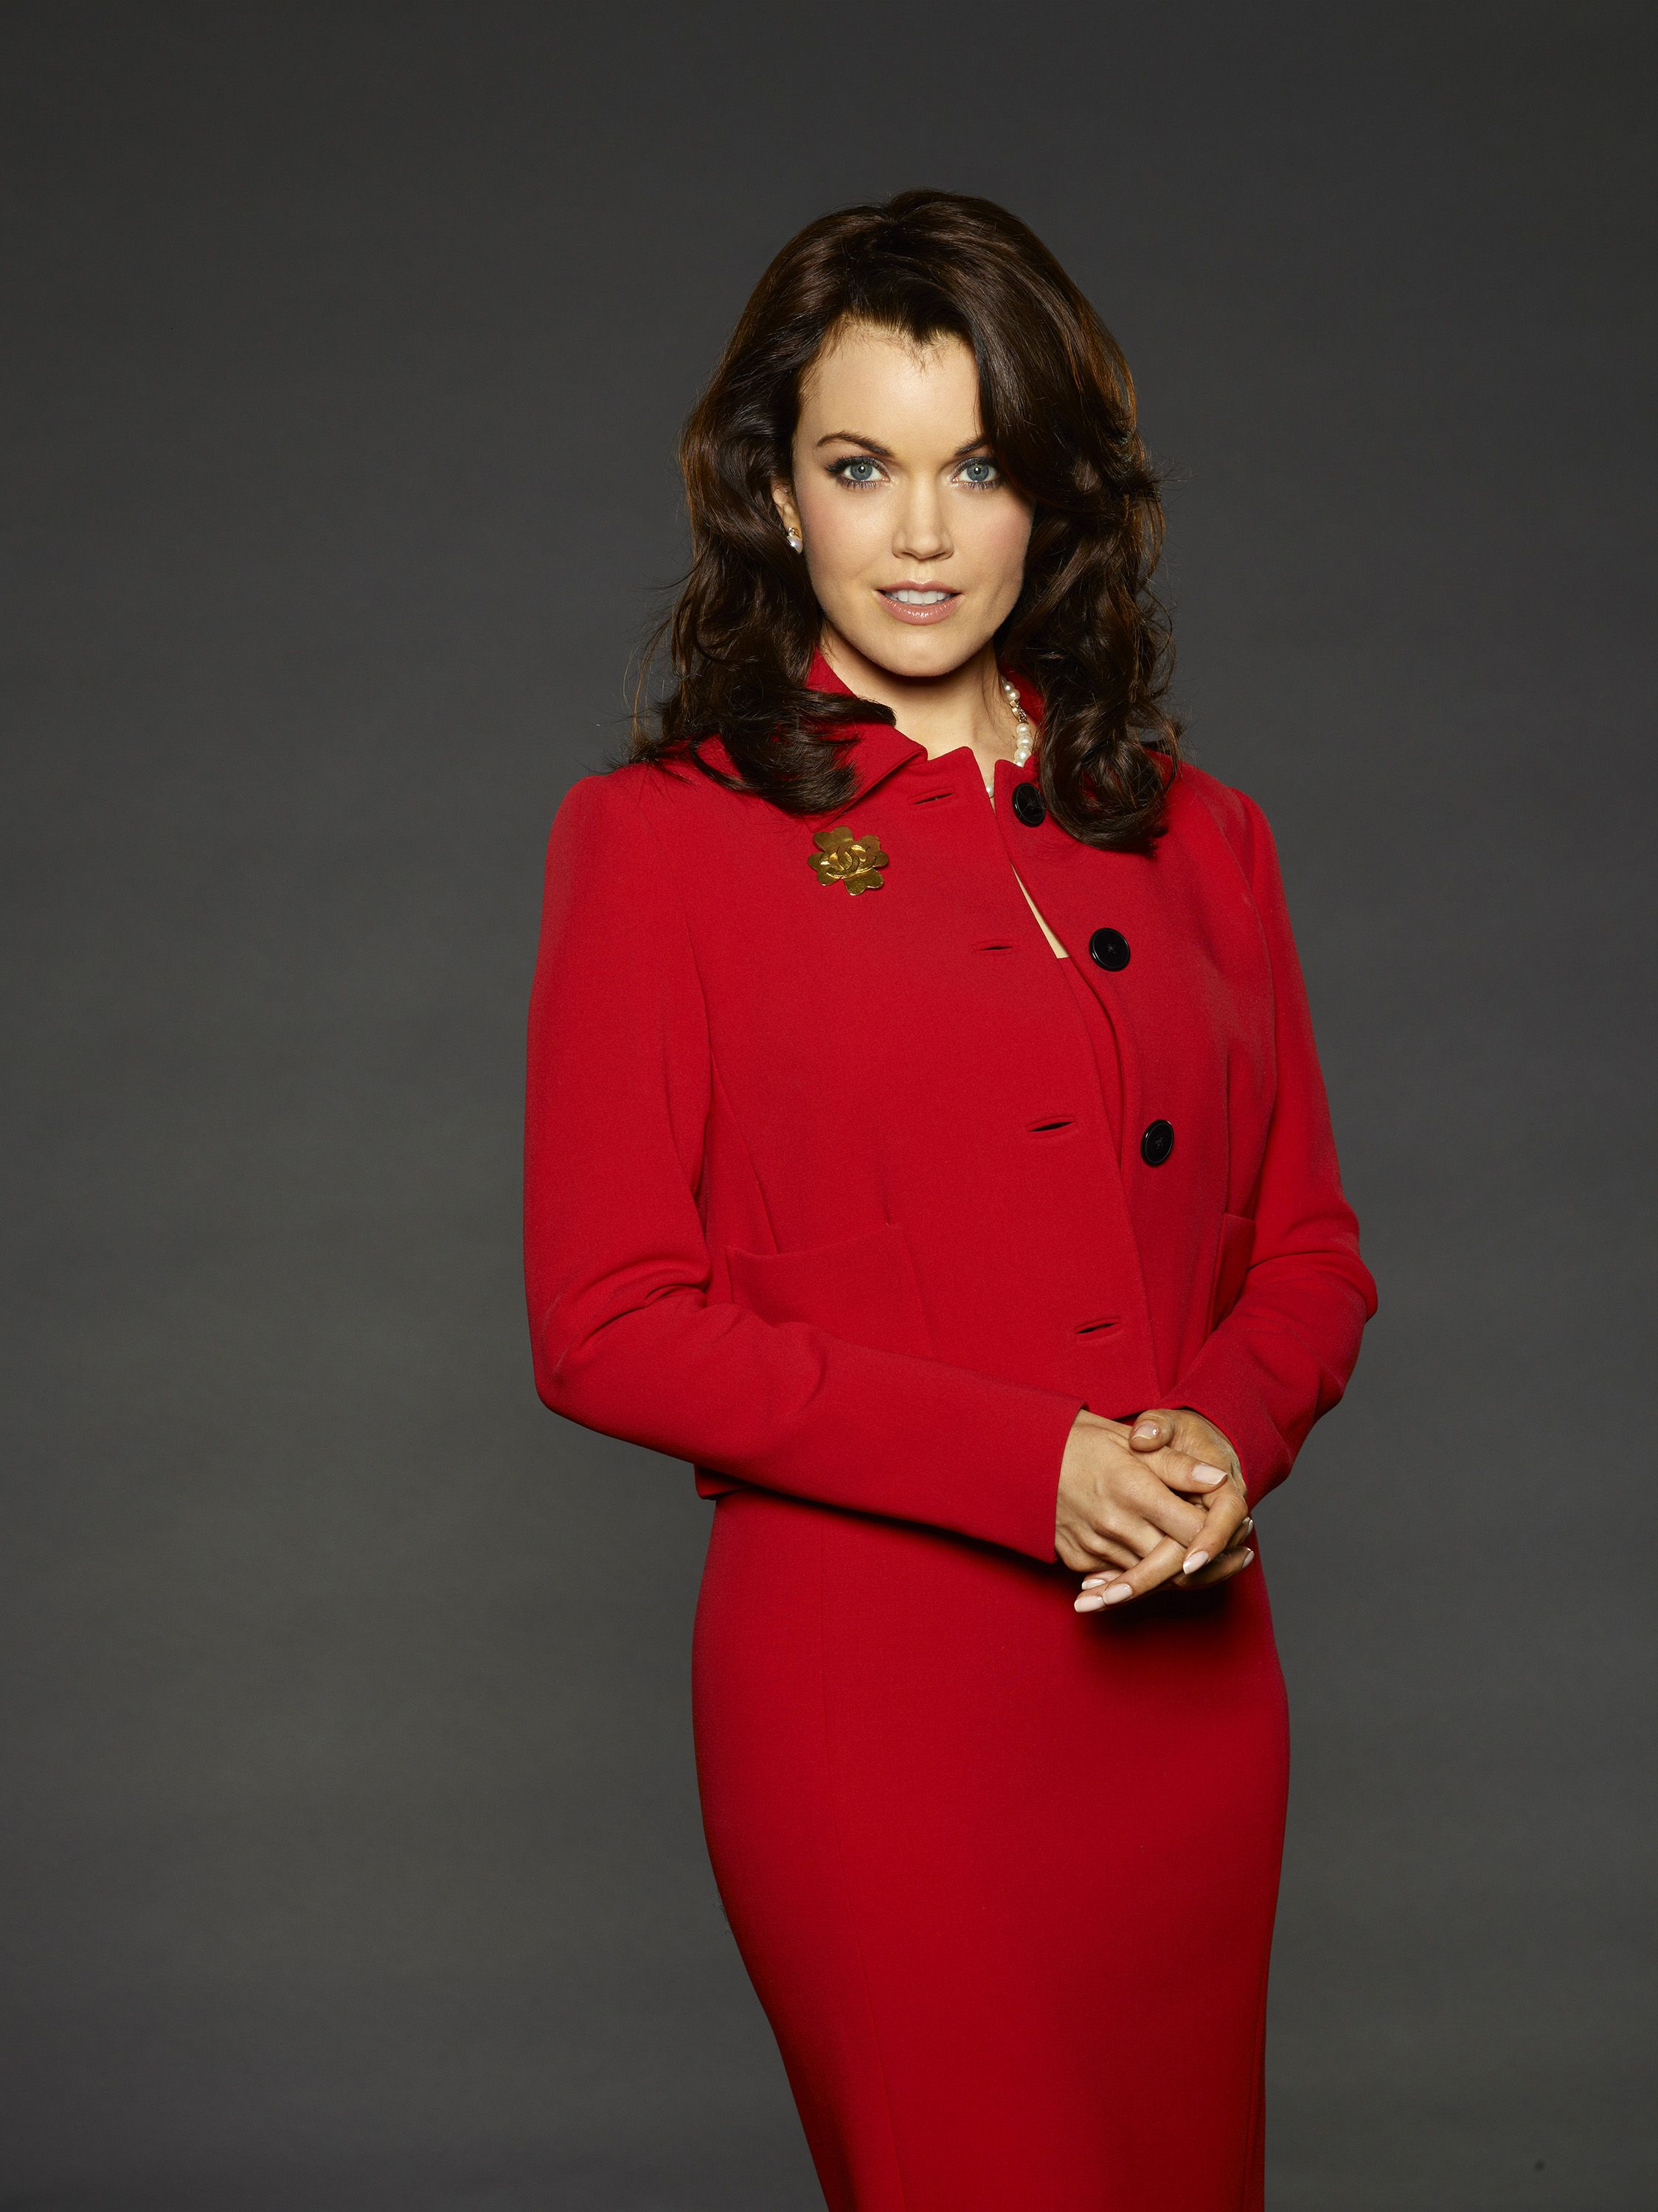 Bellamy Young As Mellie Grant On Scandal Season 3